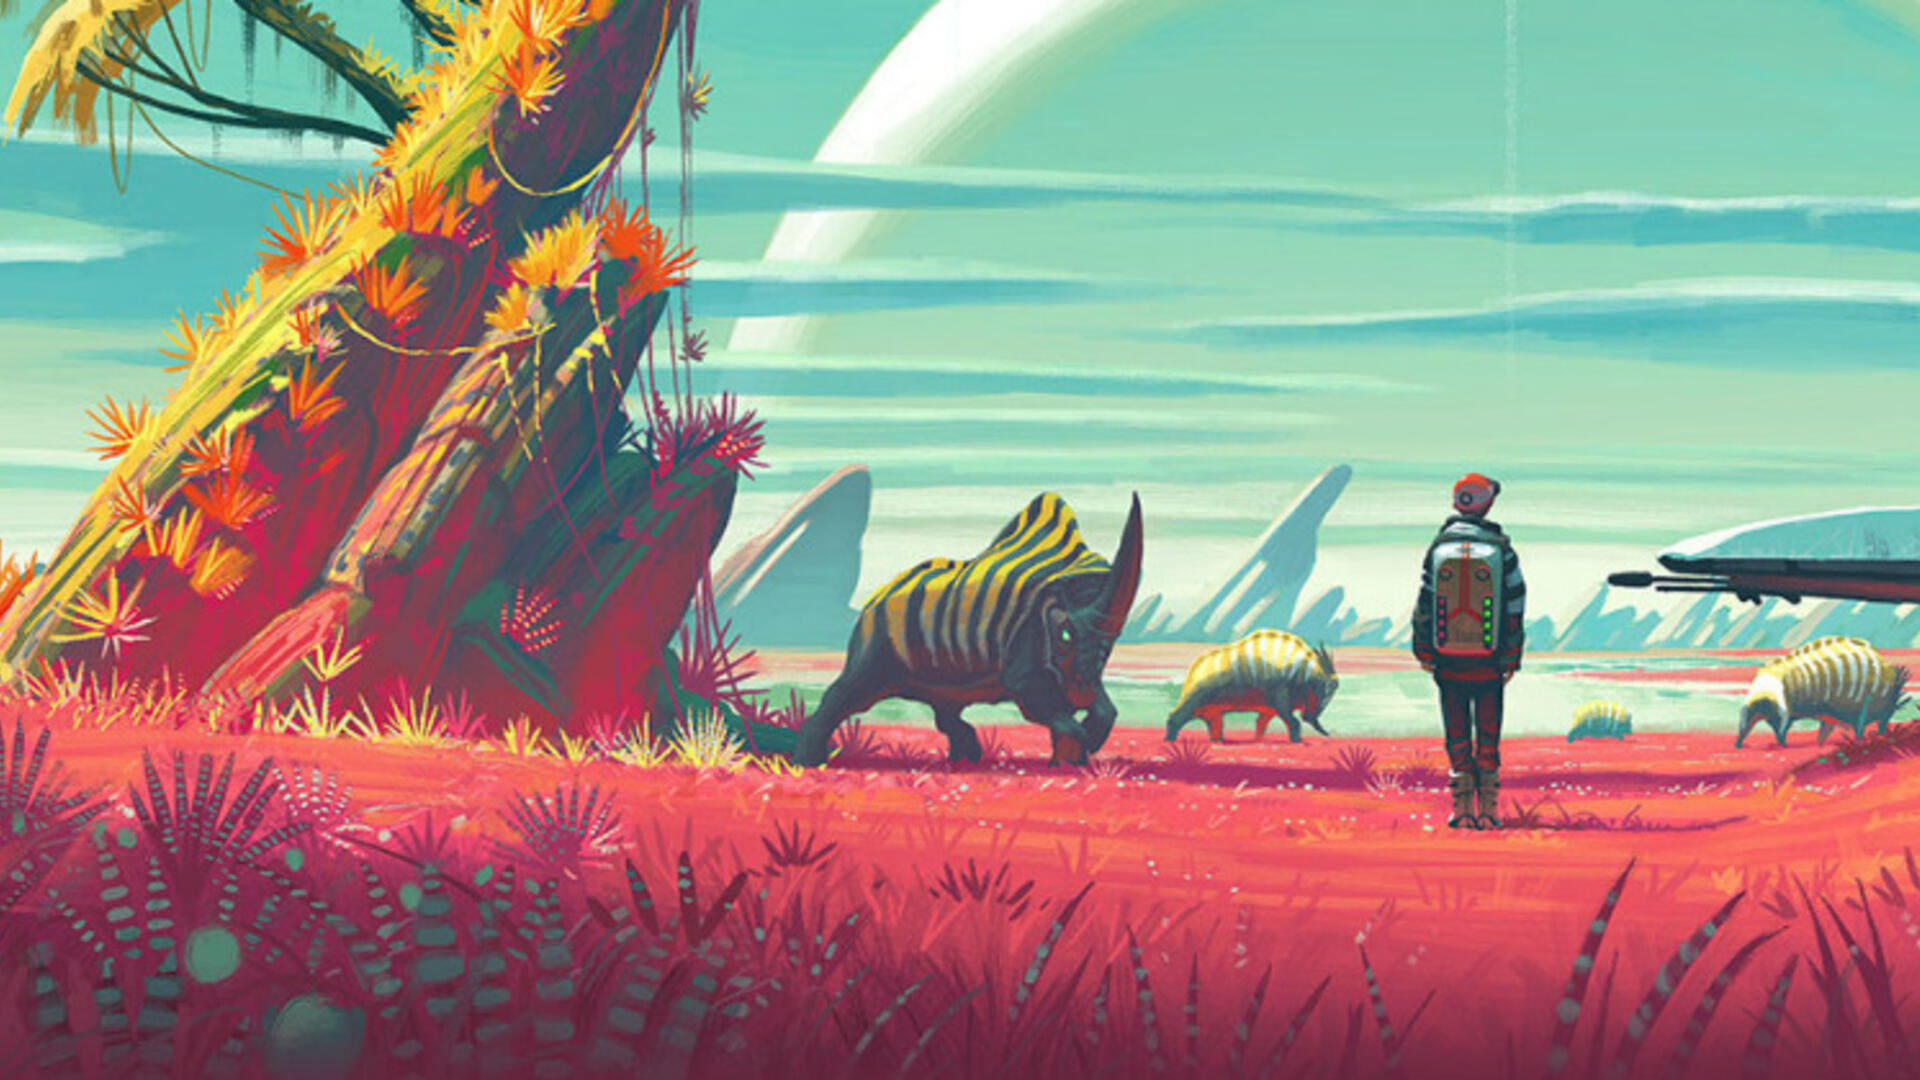 No Man's Sky PlayStation 4 Review: Over the Rainbow [Update: Final Thoughts and Score]